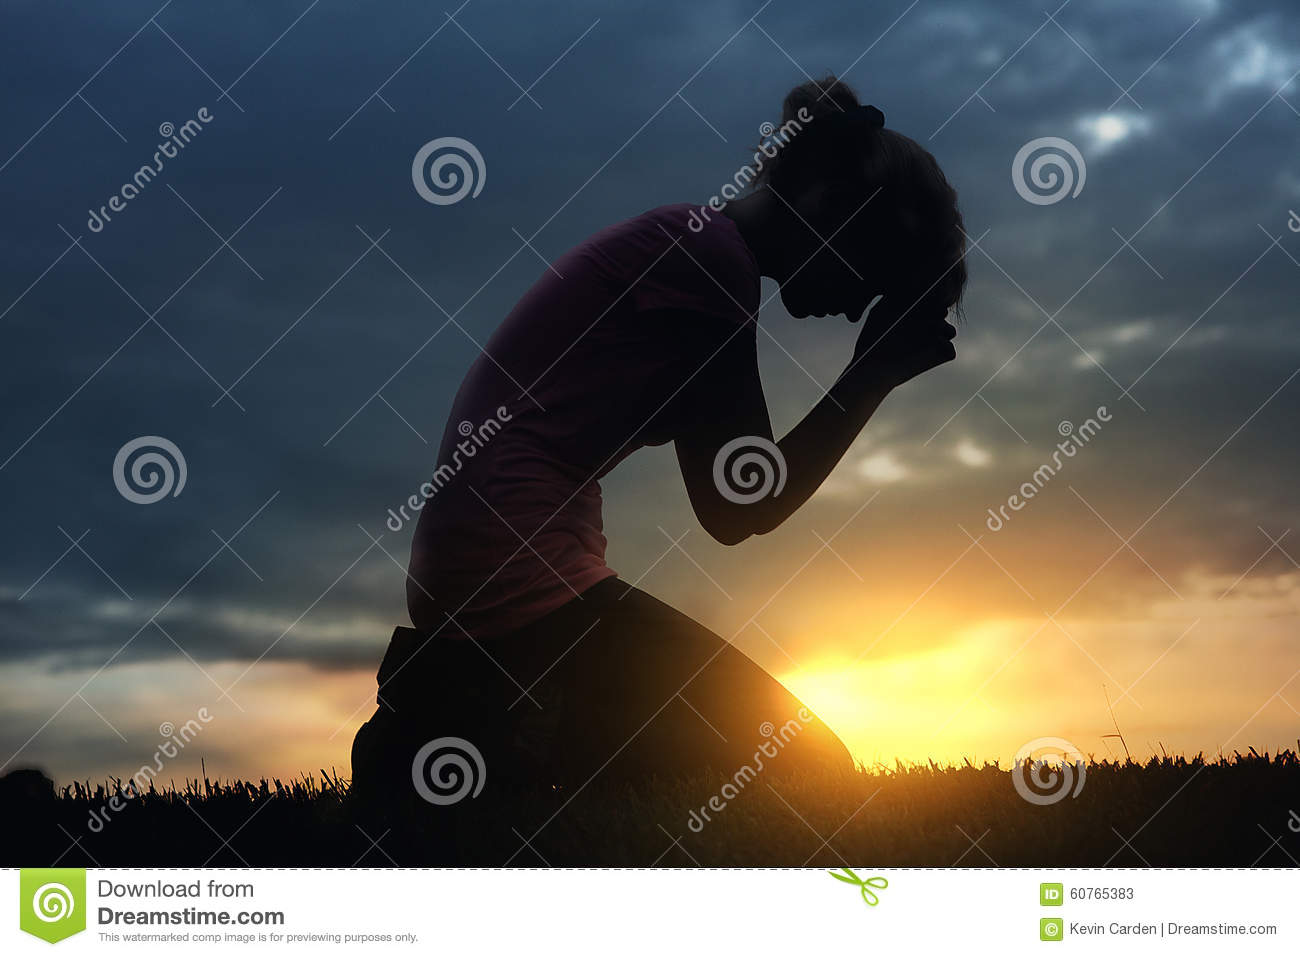 Praying At Sunset Stock Photo - Image: 60765383